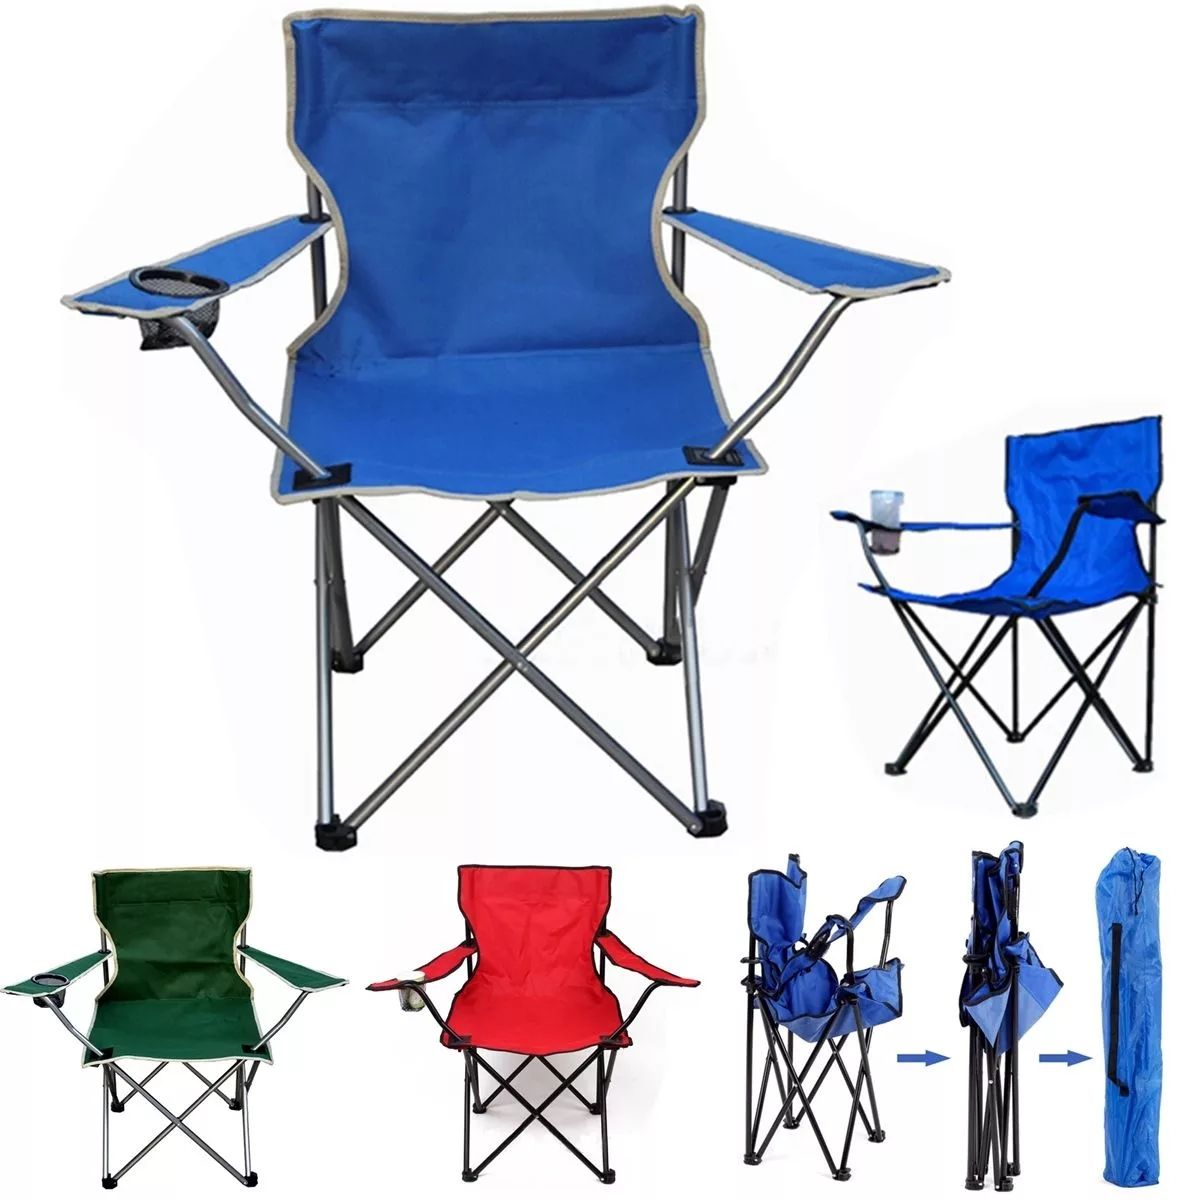 Outdoor Portable Folding Chair Fishing Camping Beach Picnic Chair Seat With Cup Holder Oxford Cloth Lightweight camping chair